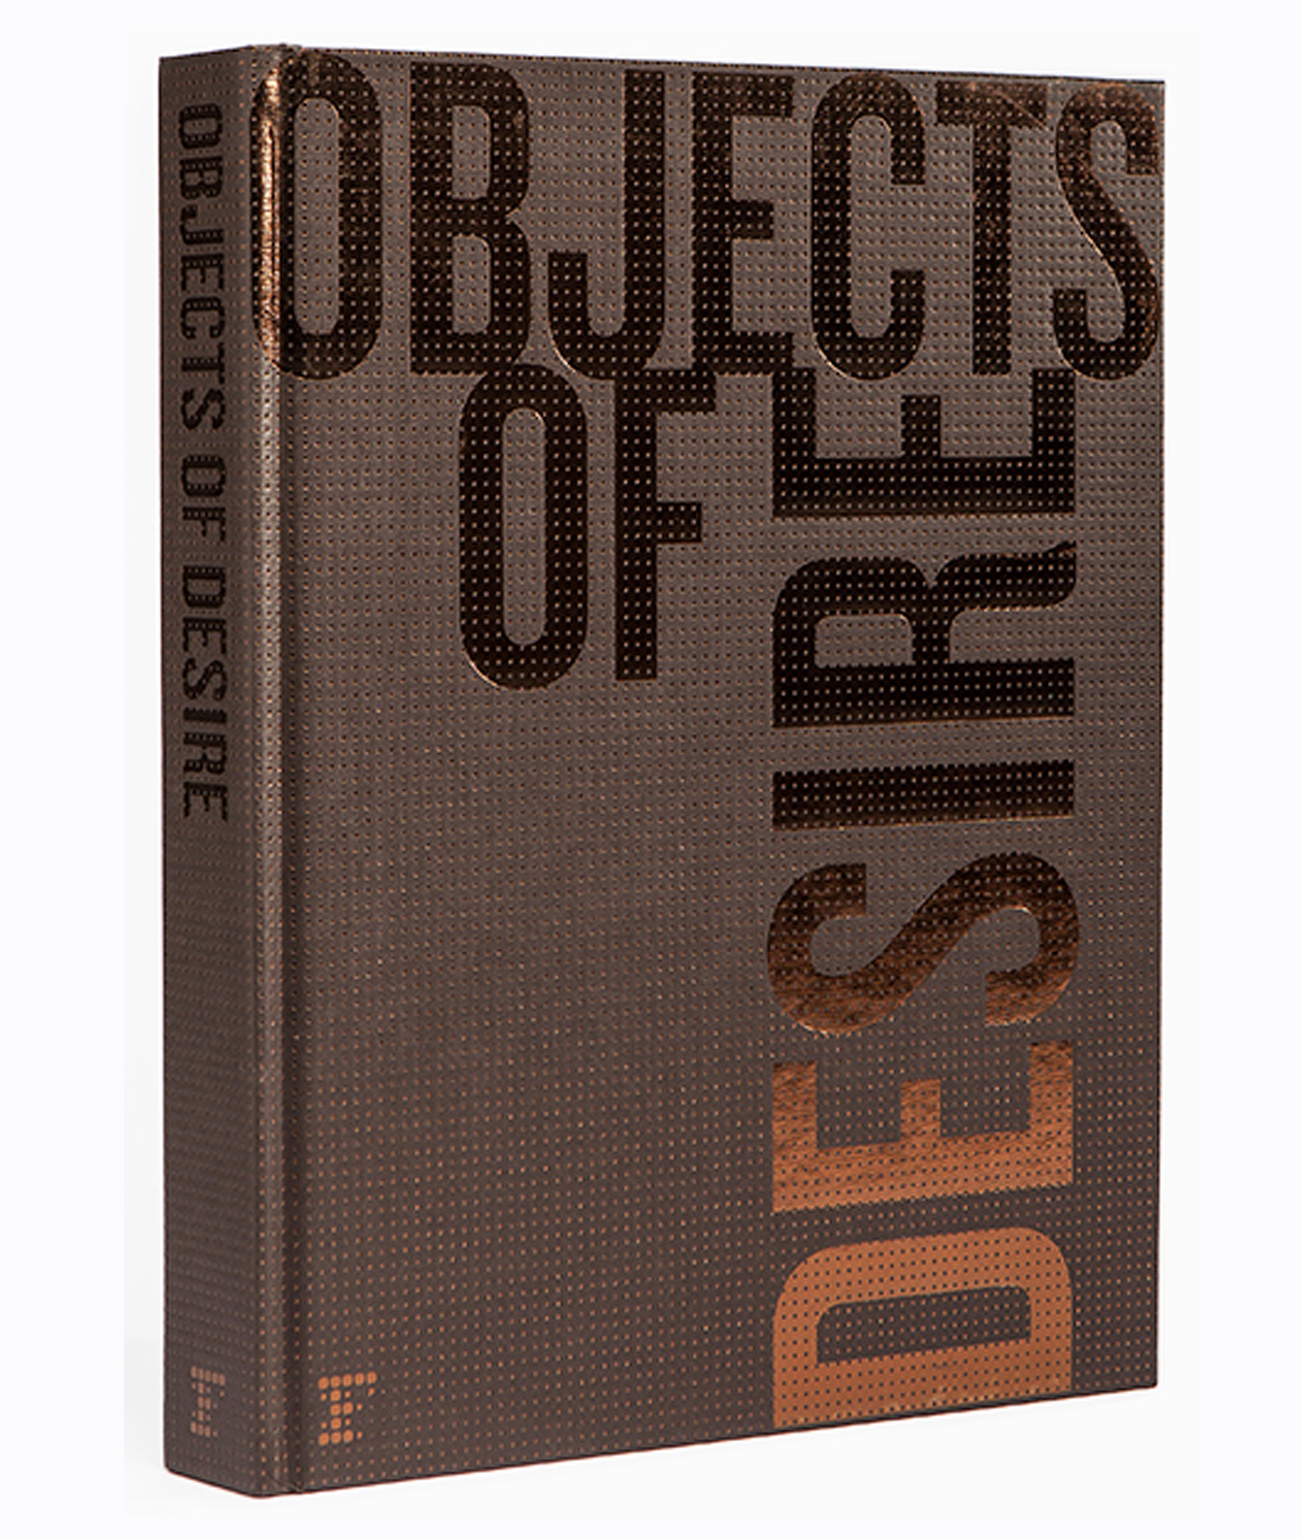 Brent Black Featured in Objects of Desire